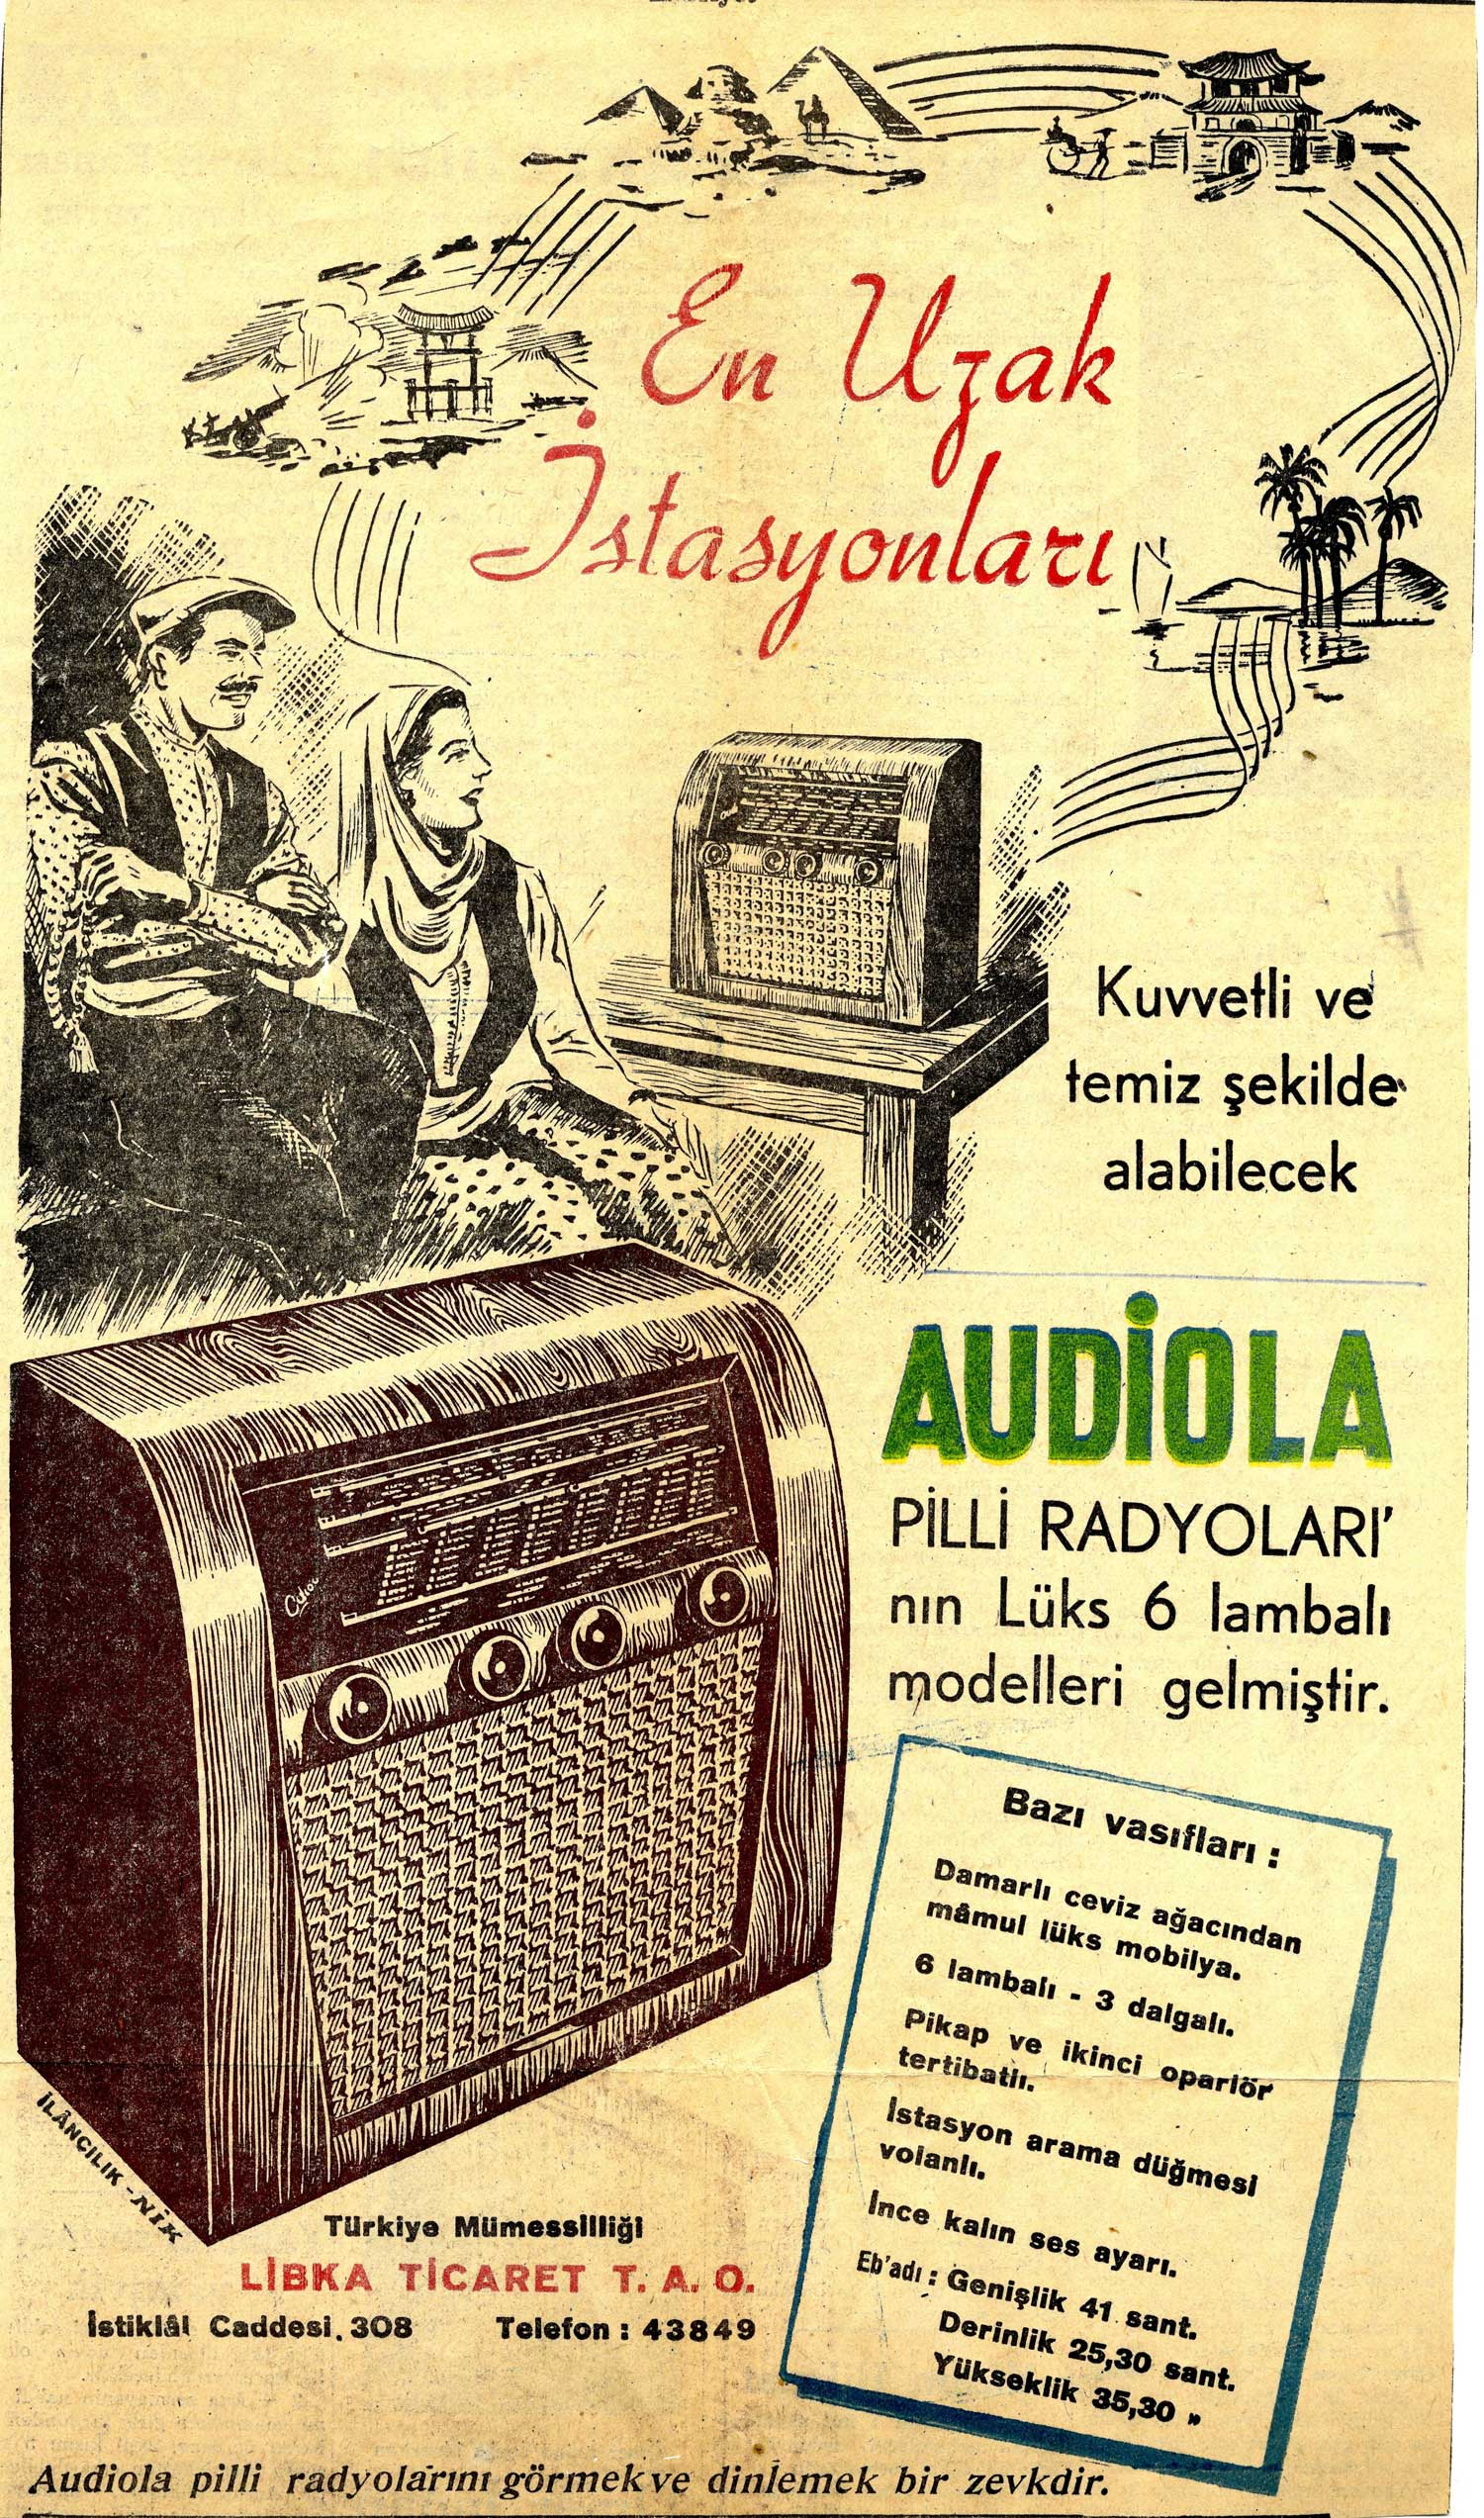 Turkish audiola ad